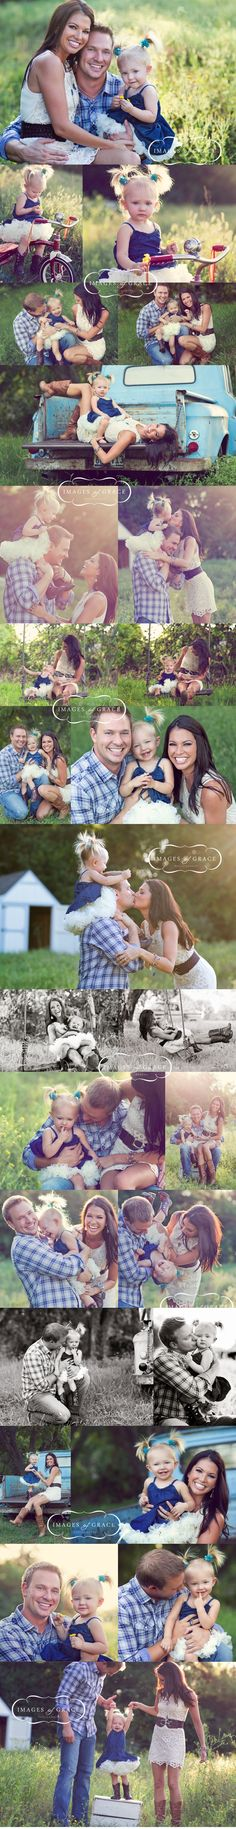 Family photography poses. Melissa Rycroft is gorgeous!